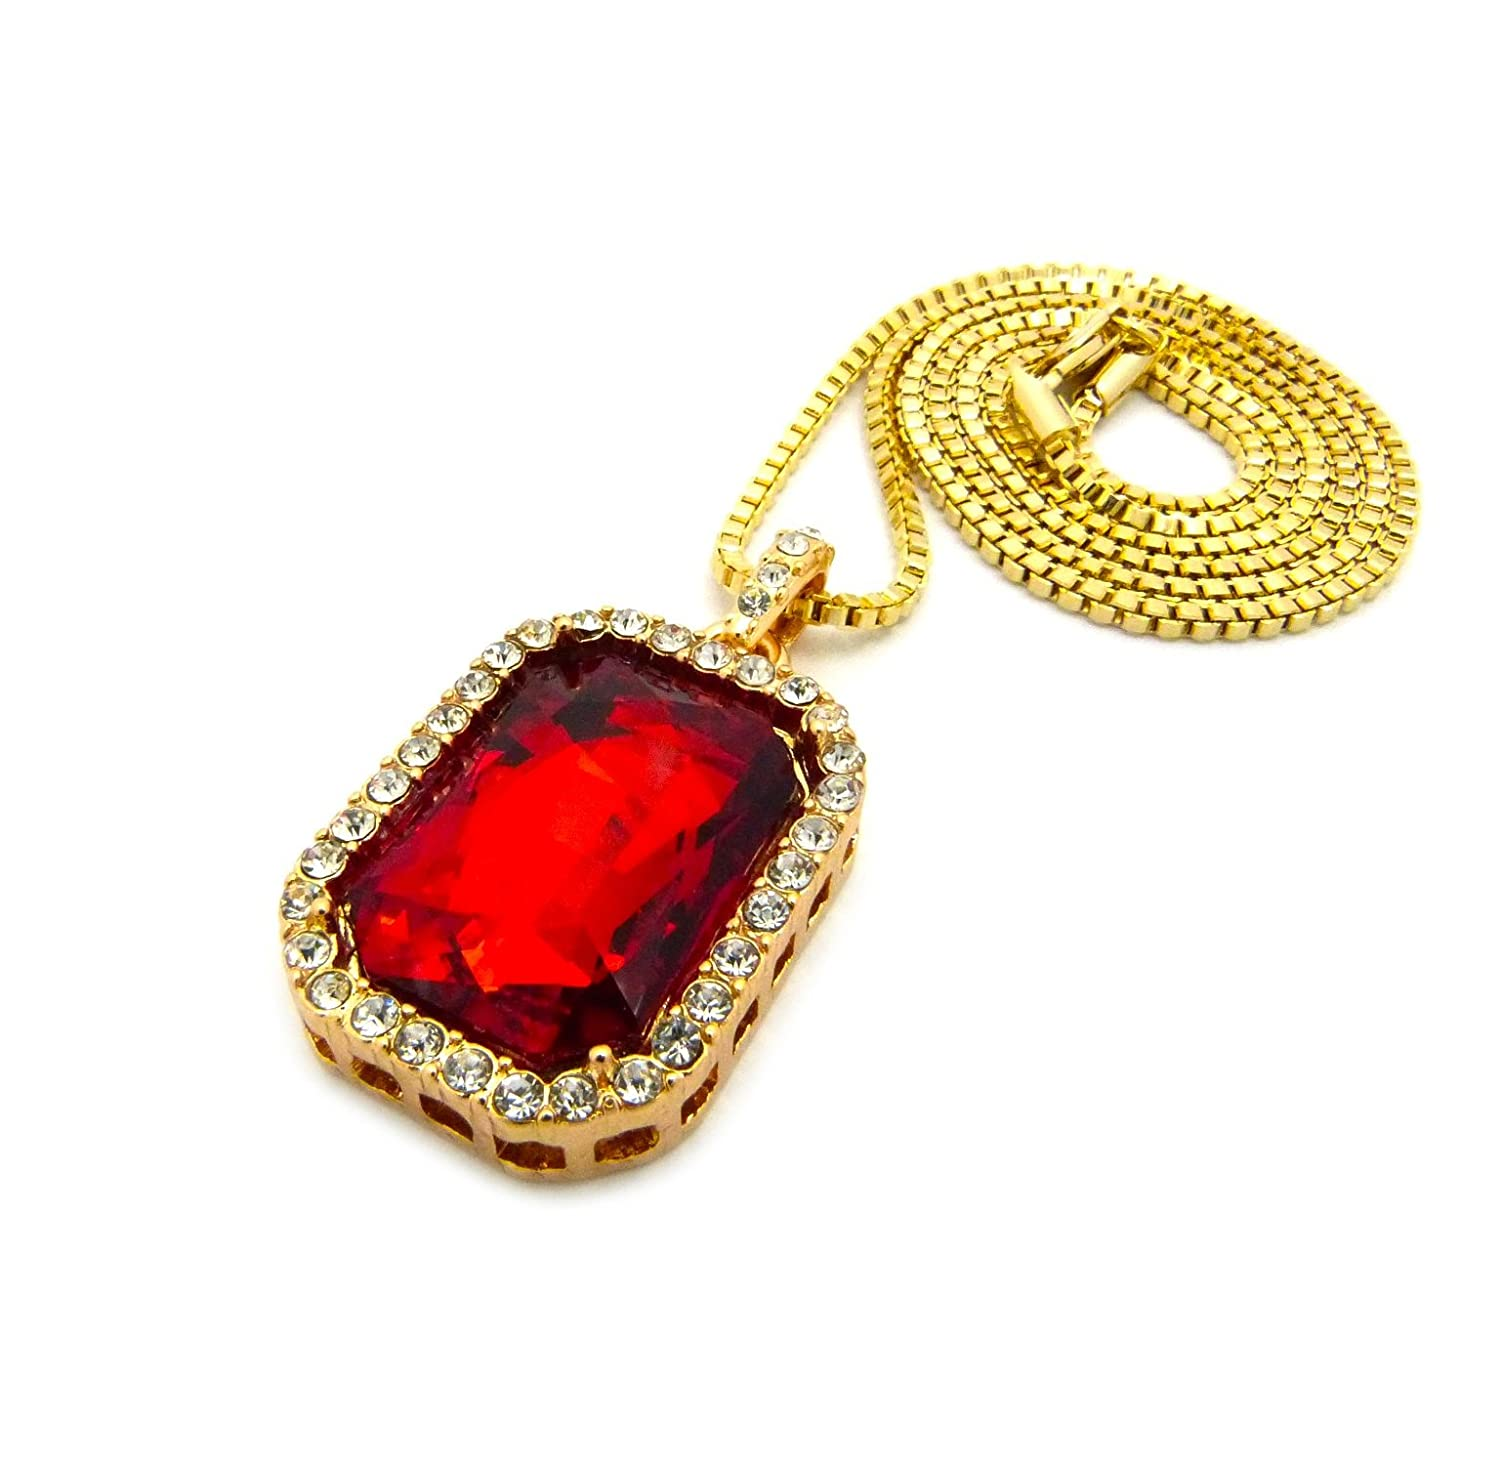 main singh ruby nkc jewelry product red black shop amrita necklace